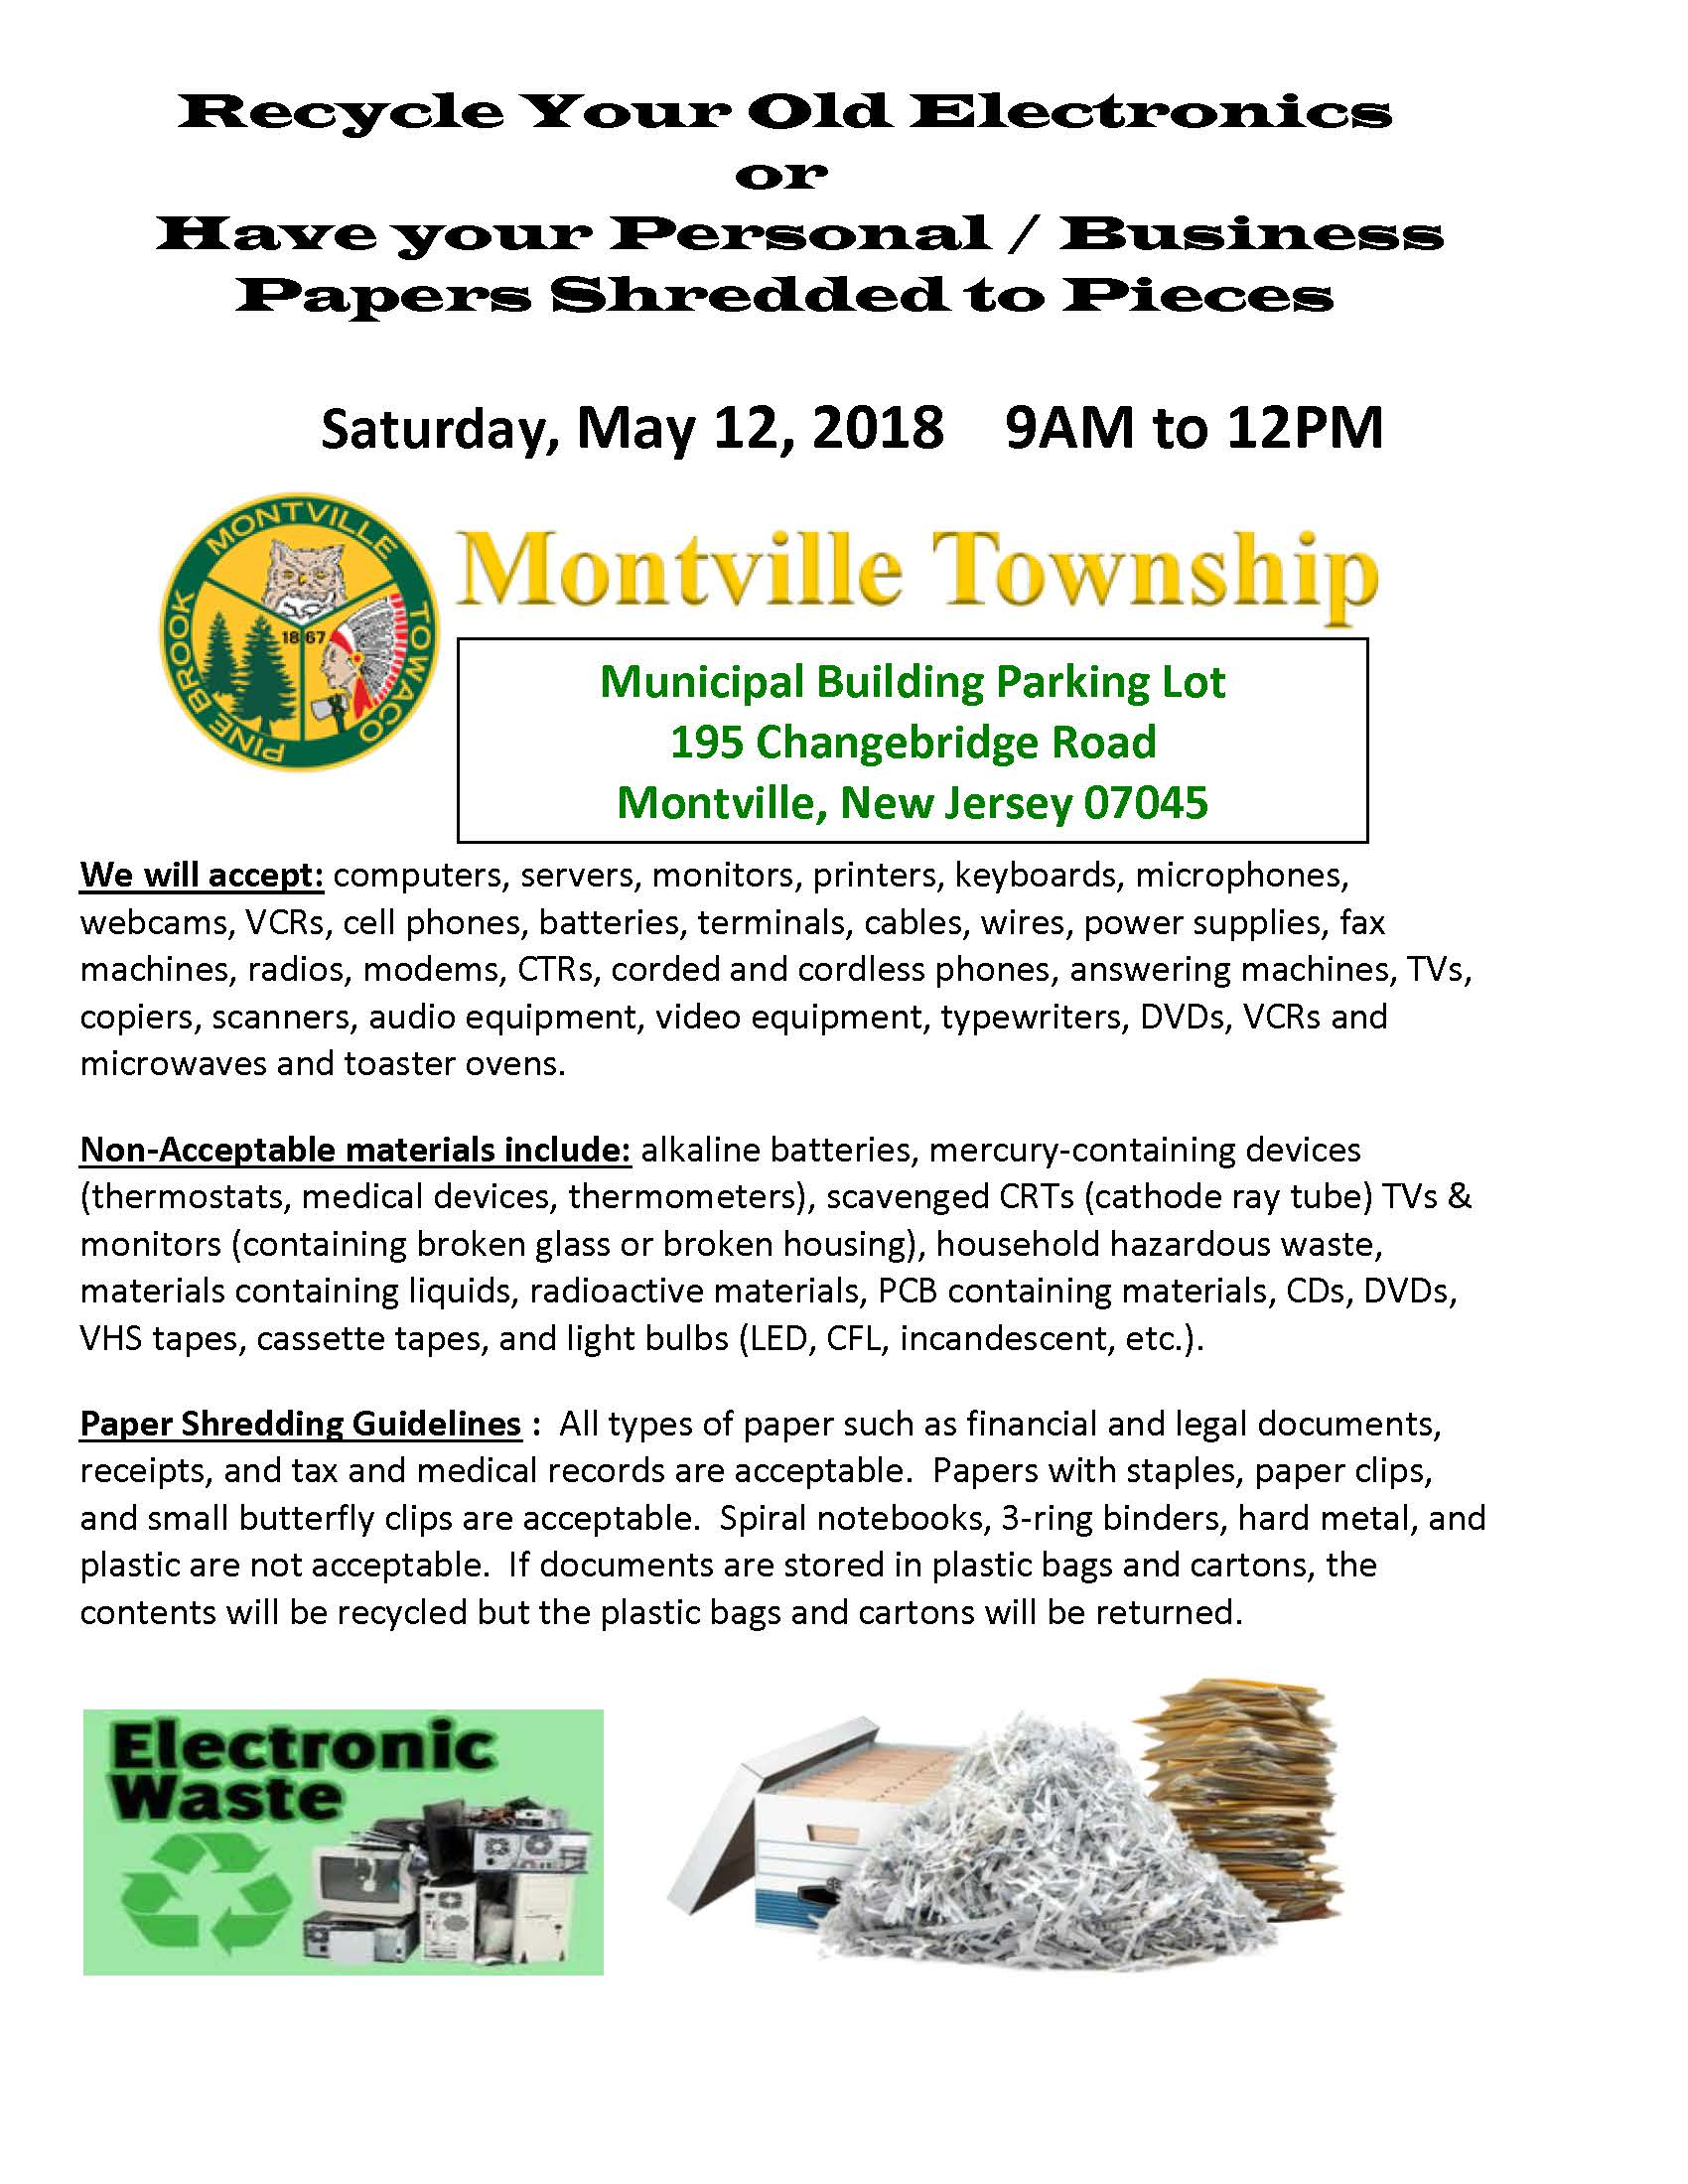 Recycle Event Flyer